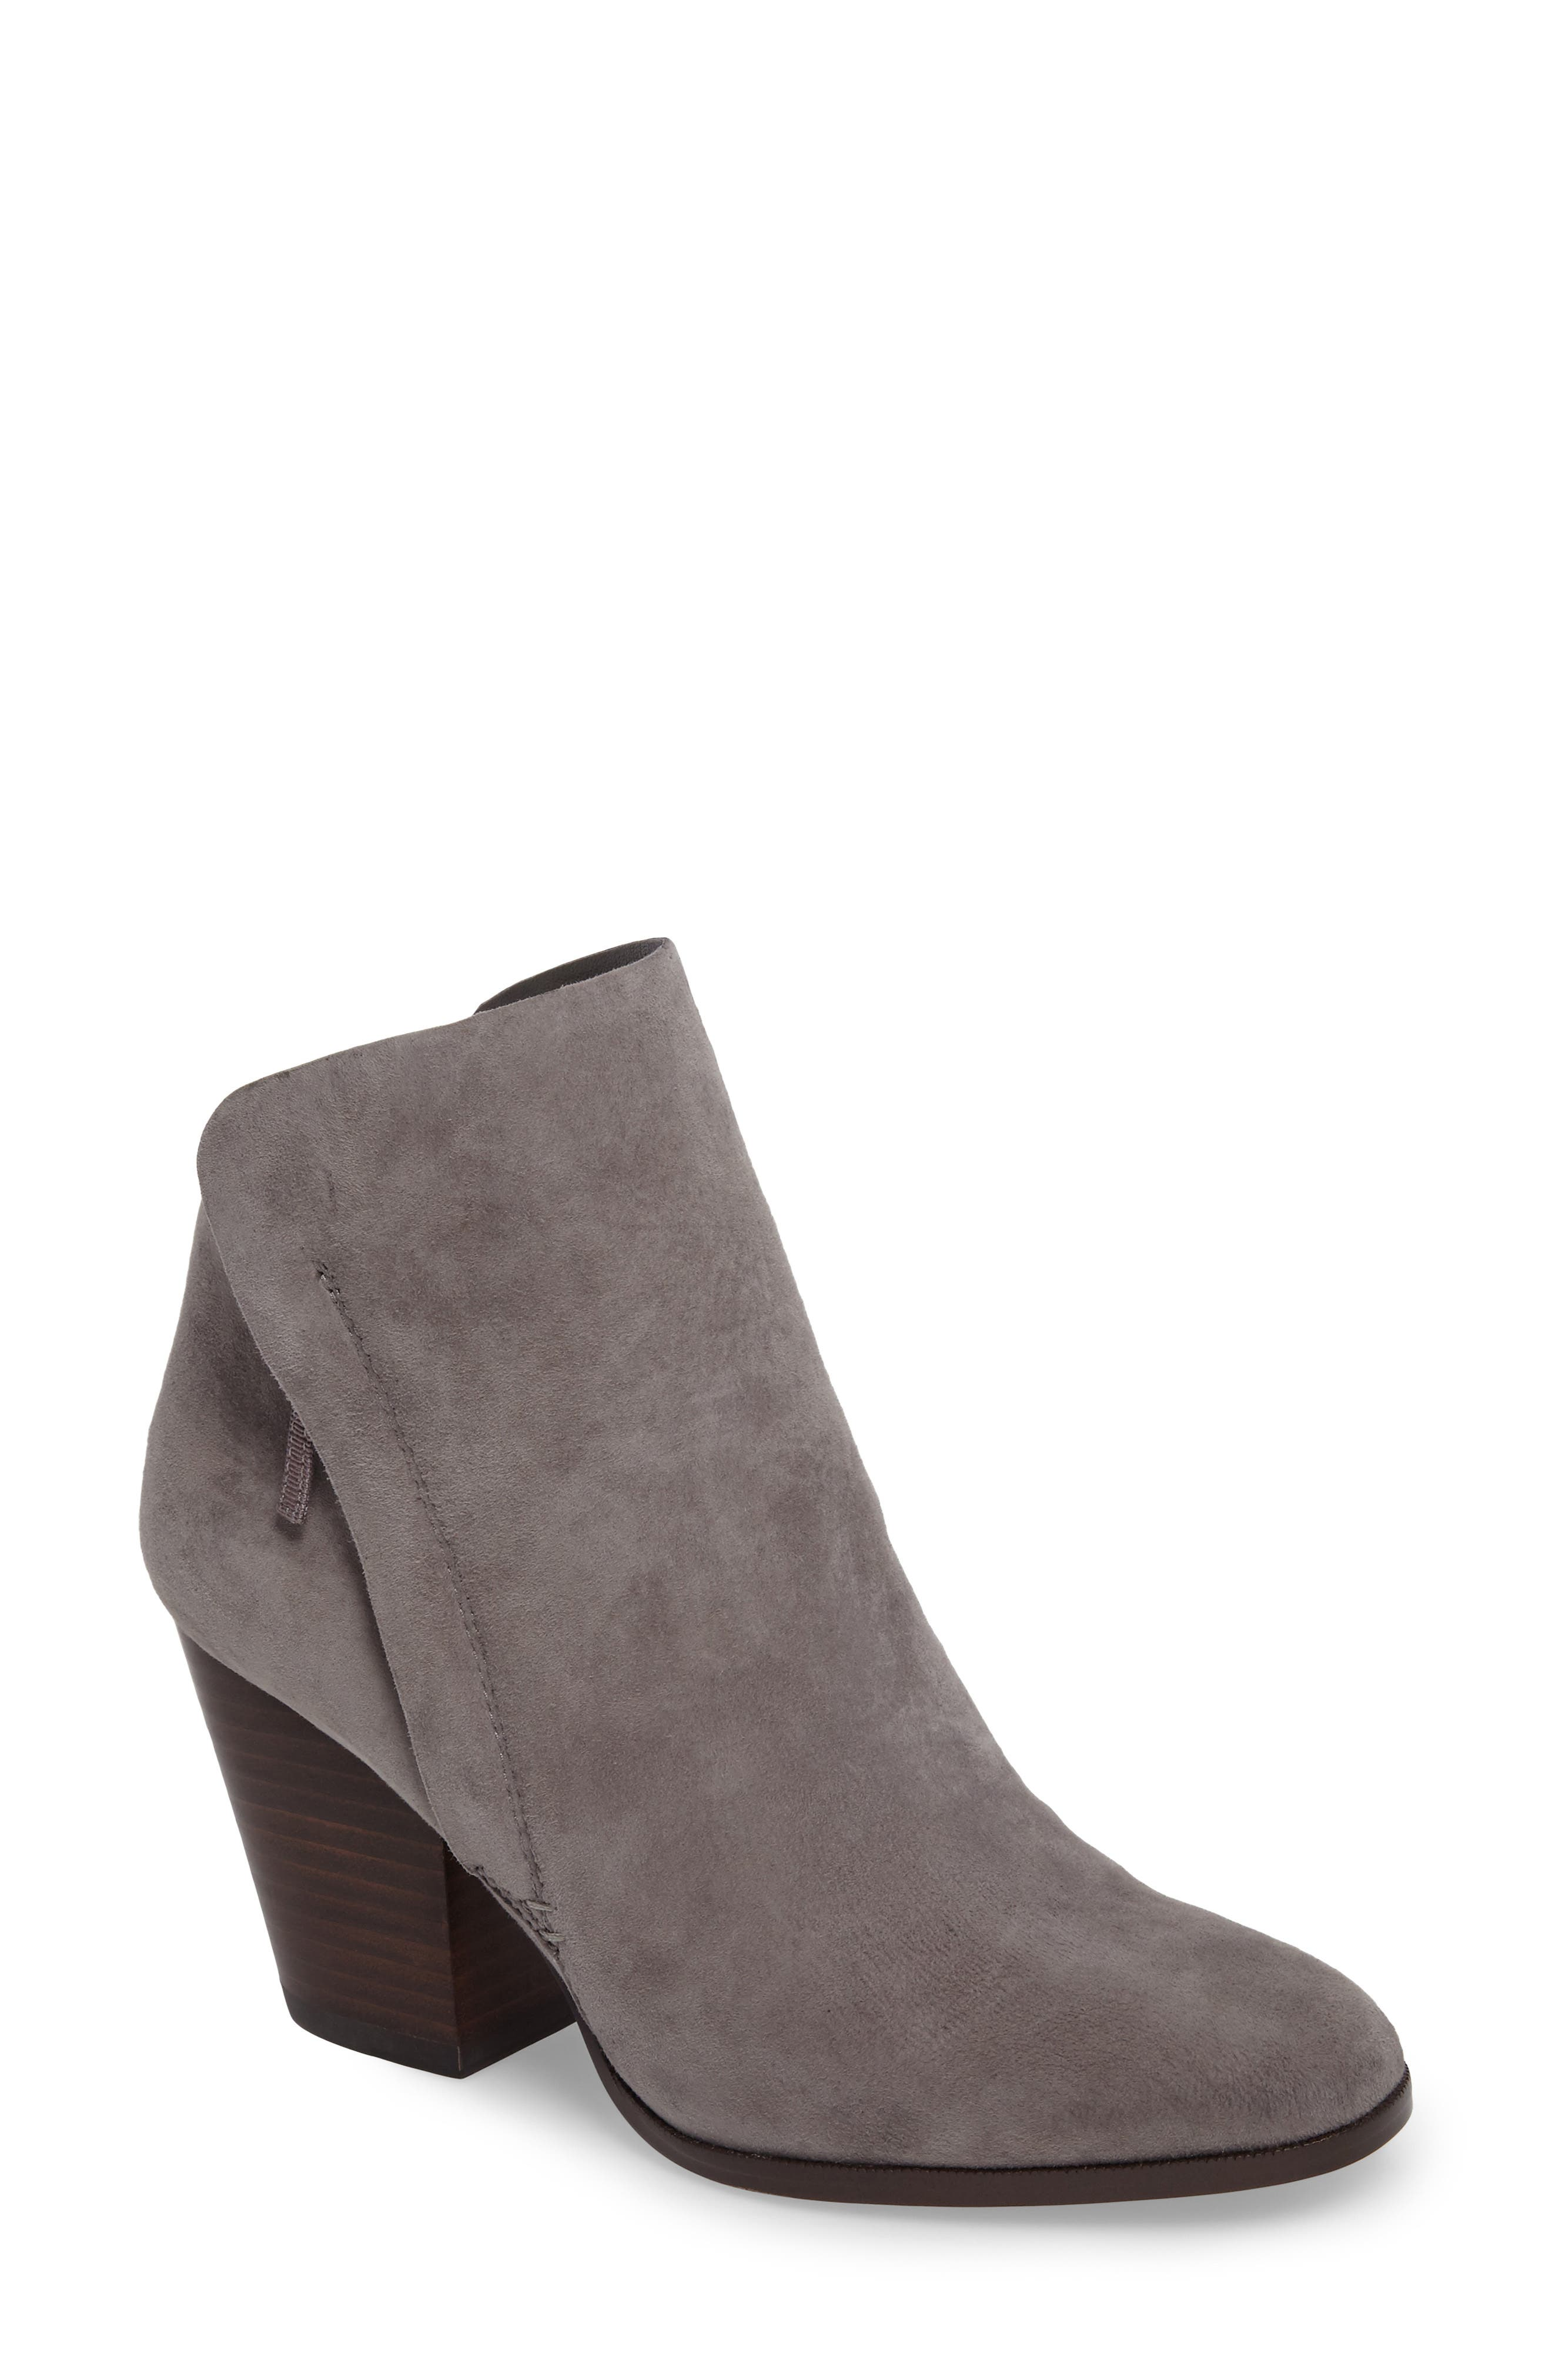 Taila Angle Zip Bootie,                             Main thumbnail 1, color,                             Iron Suede